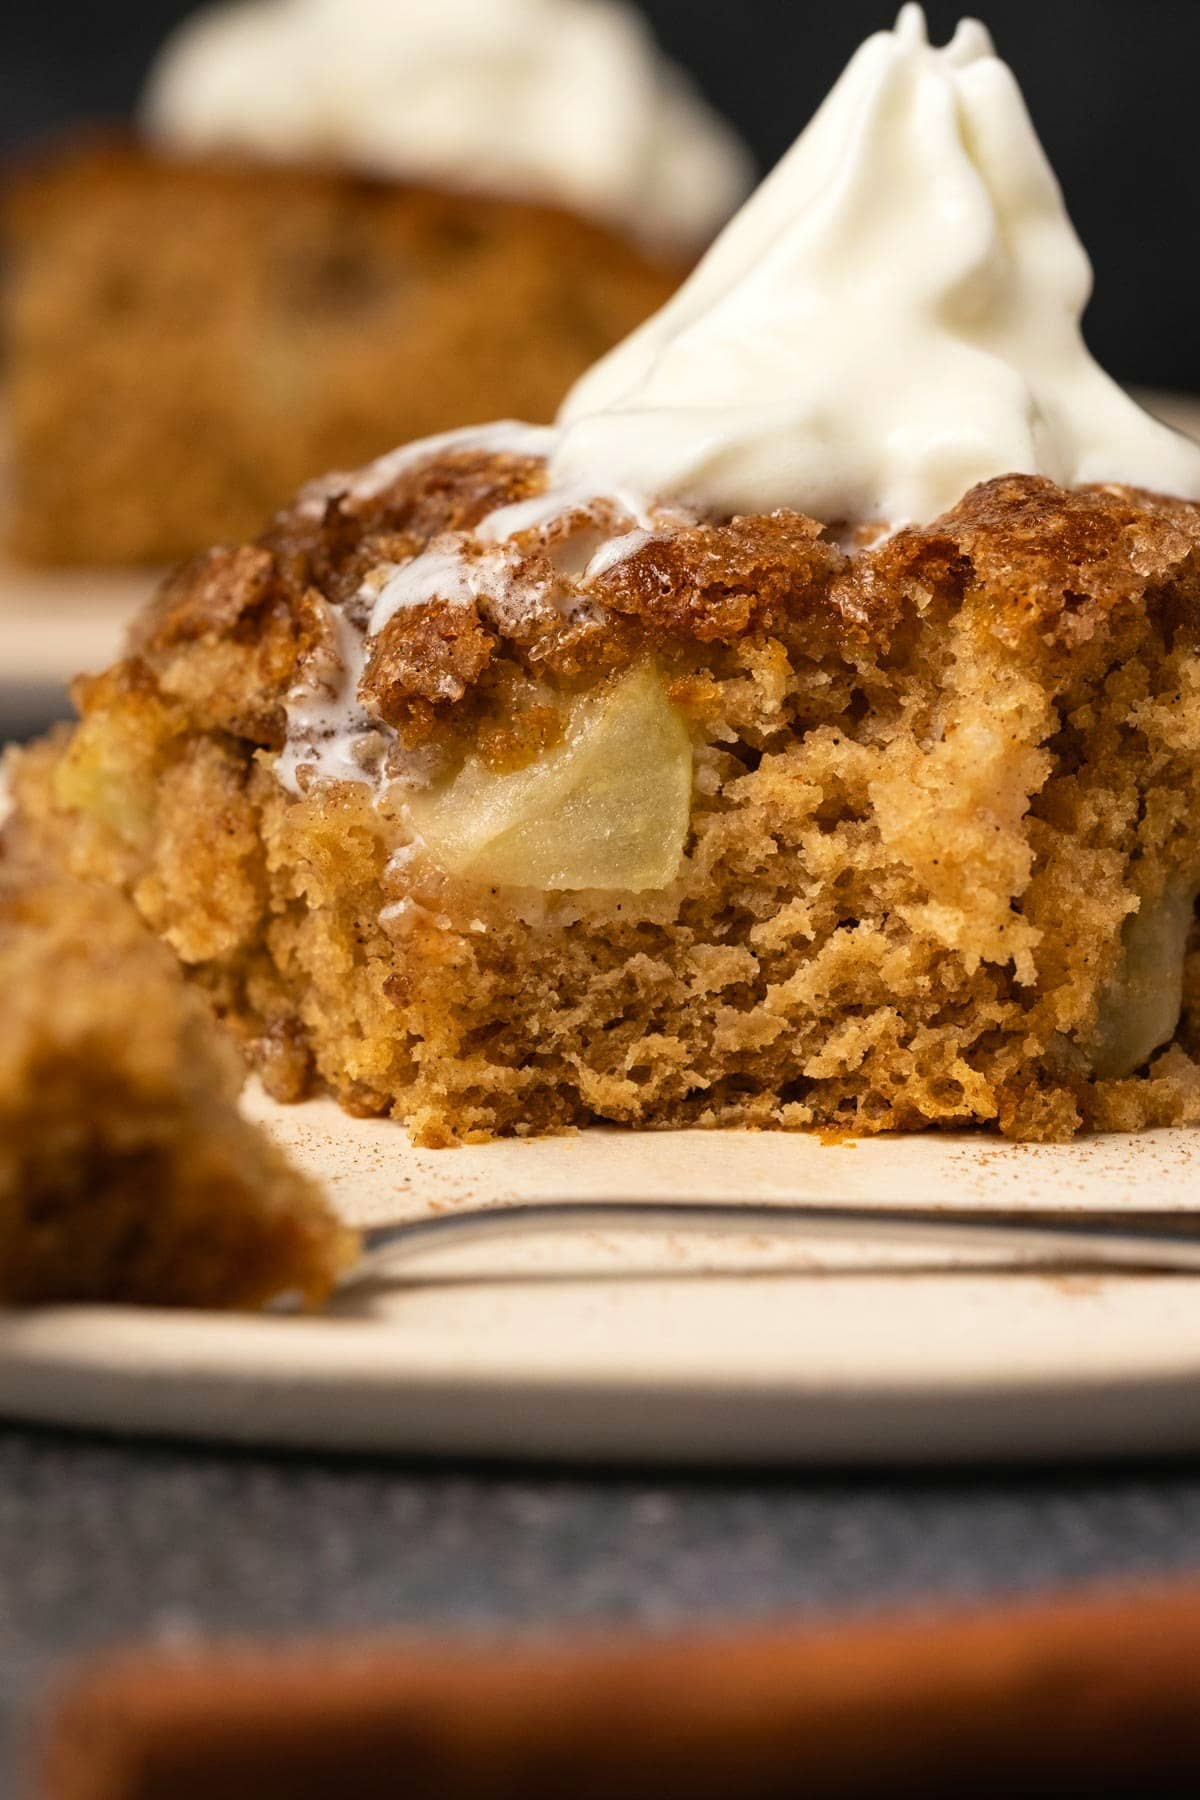 Slice of apple cake topped with melting whipped cream.